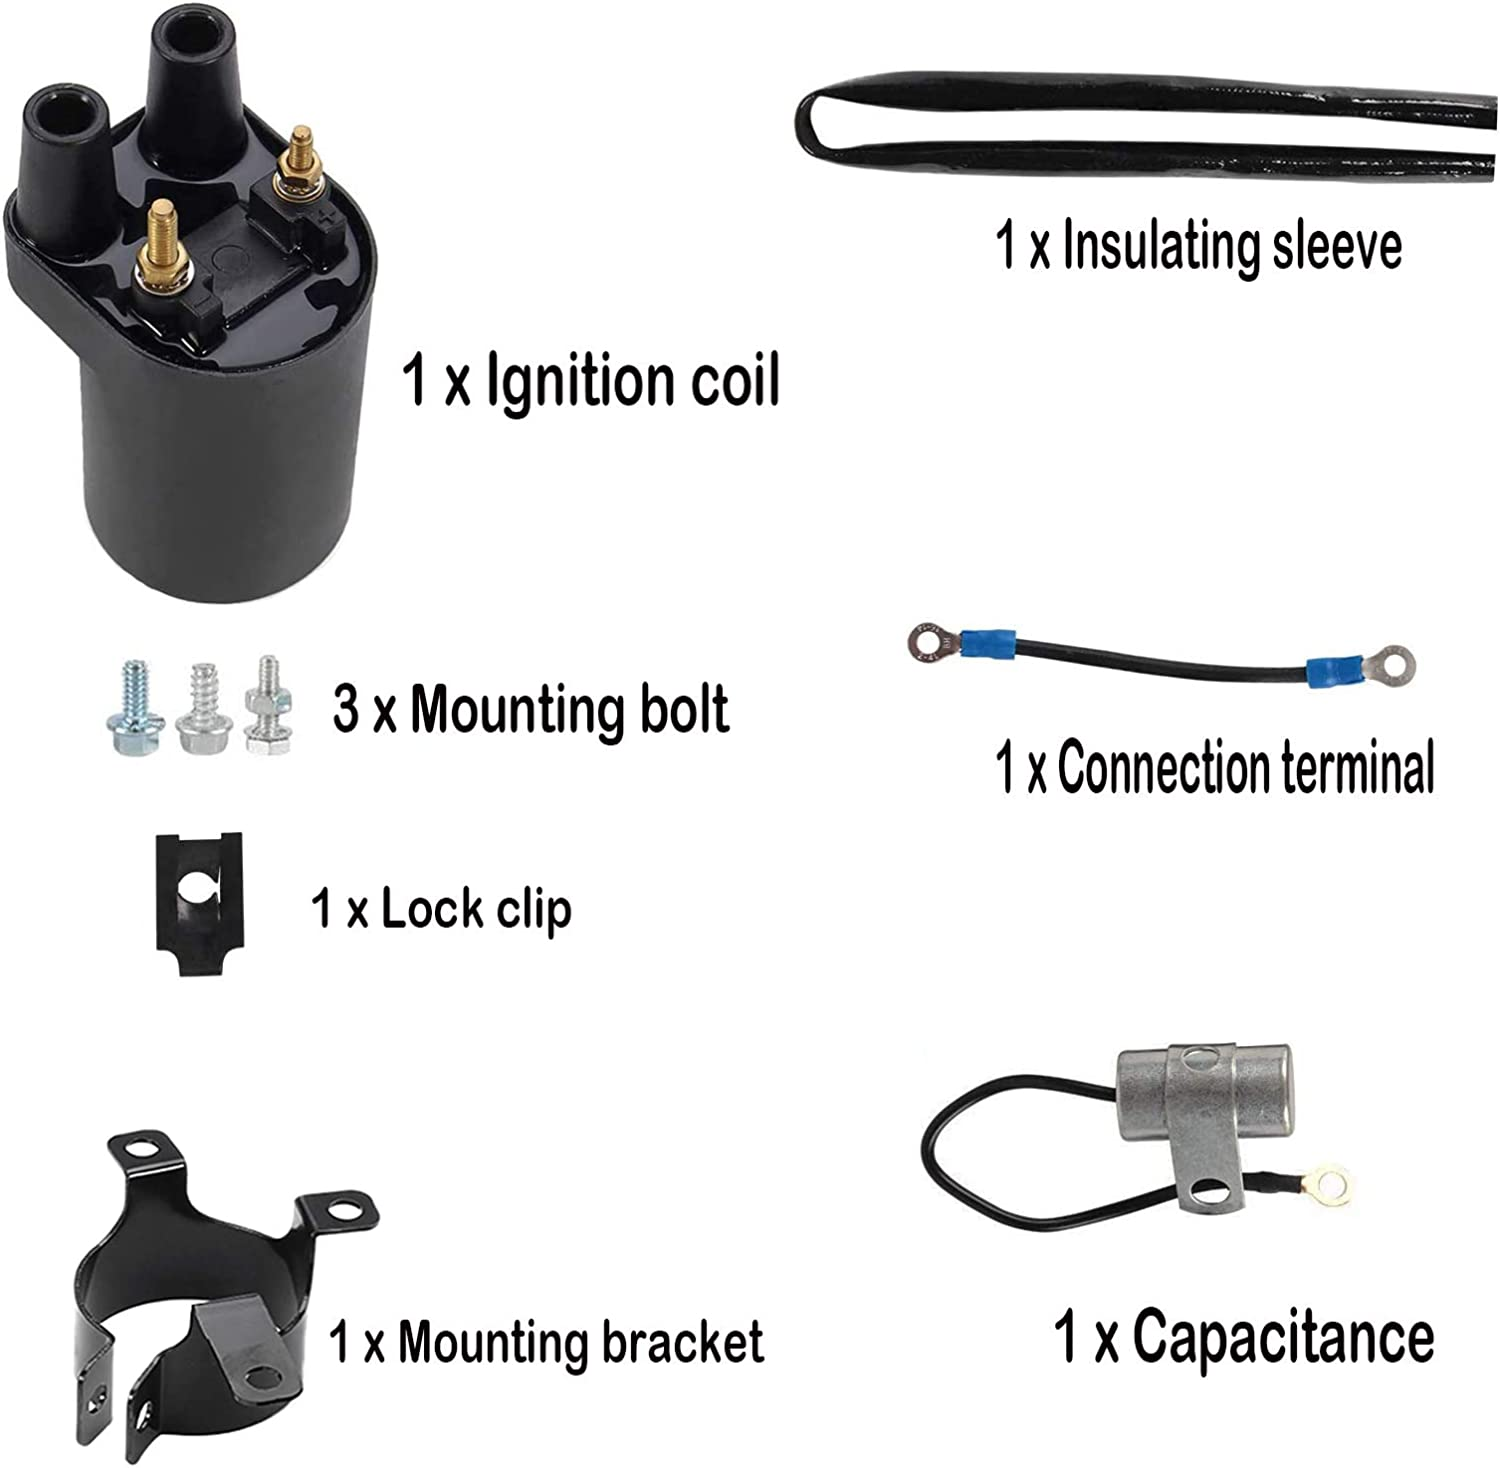 166-0804 Coil 166-0820 Coil 166-0772 Ignition Coil Replaces 166 ...